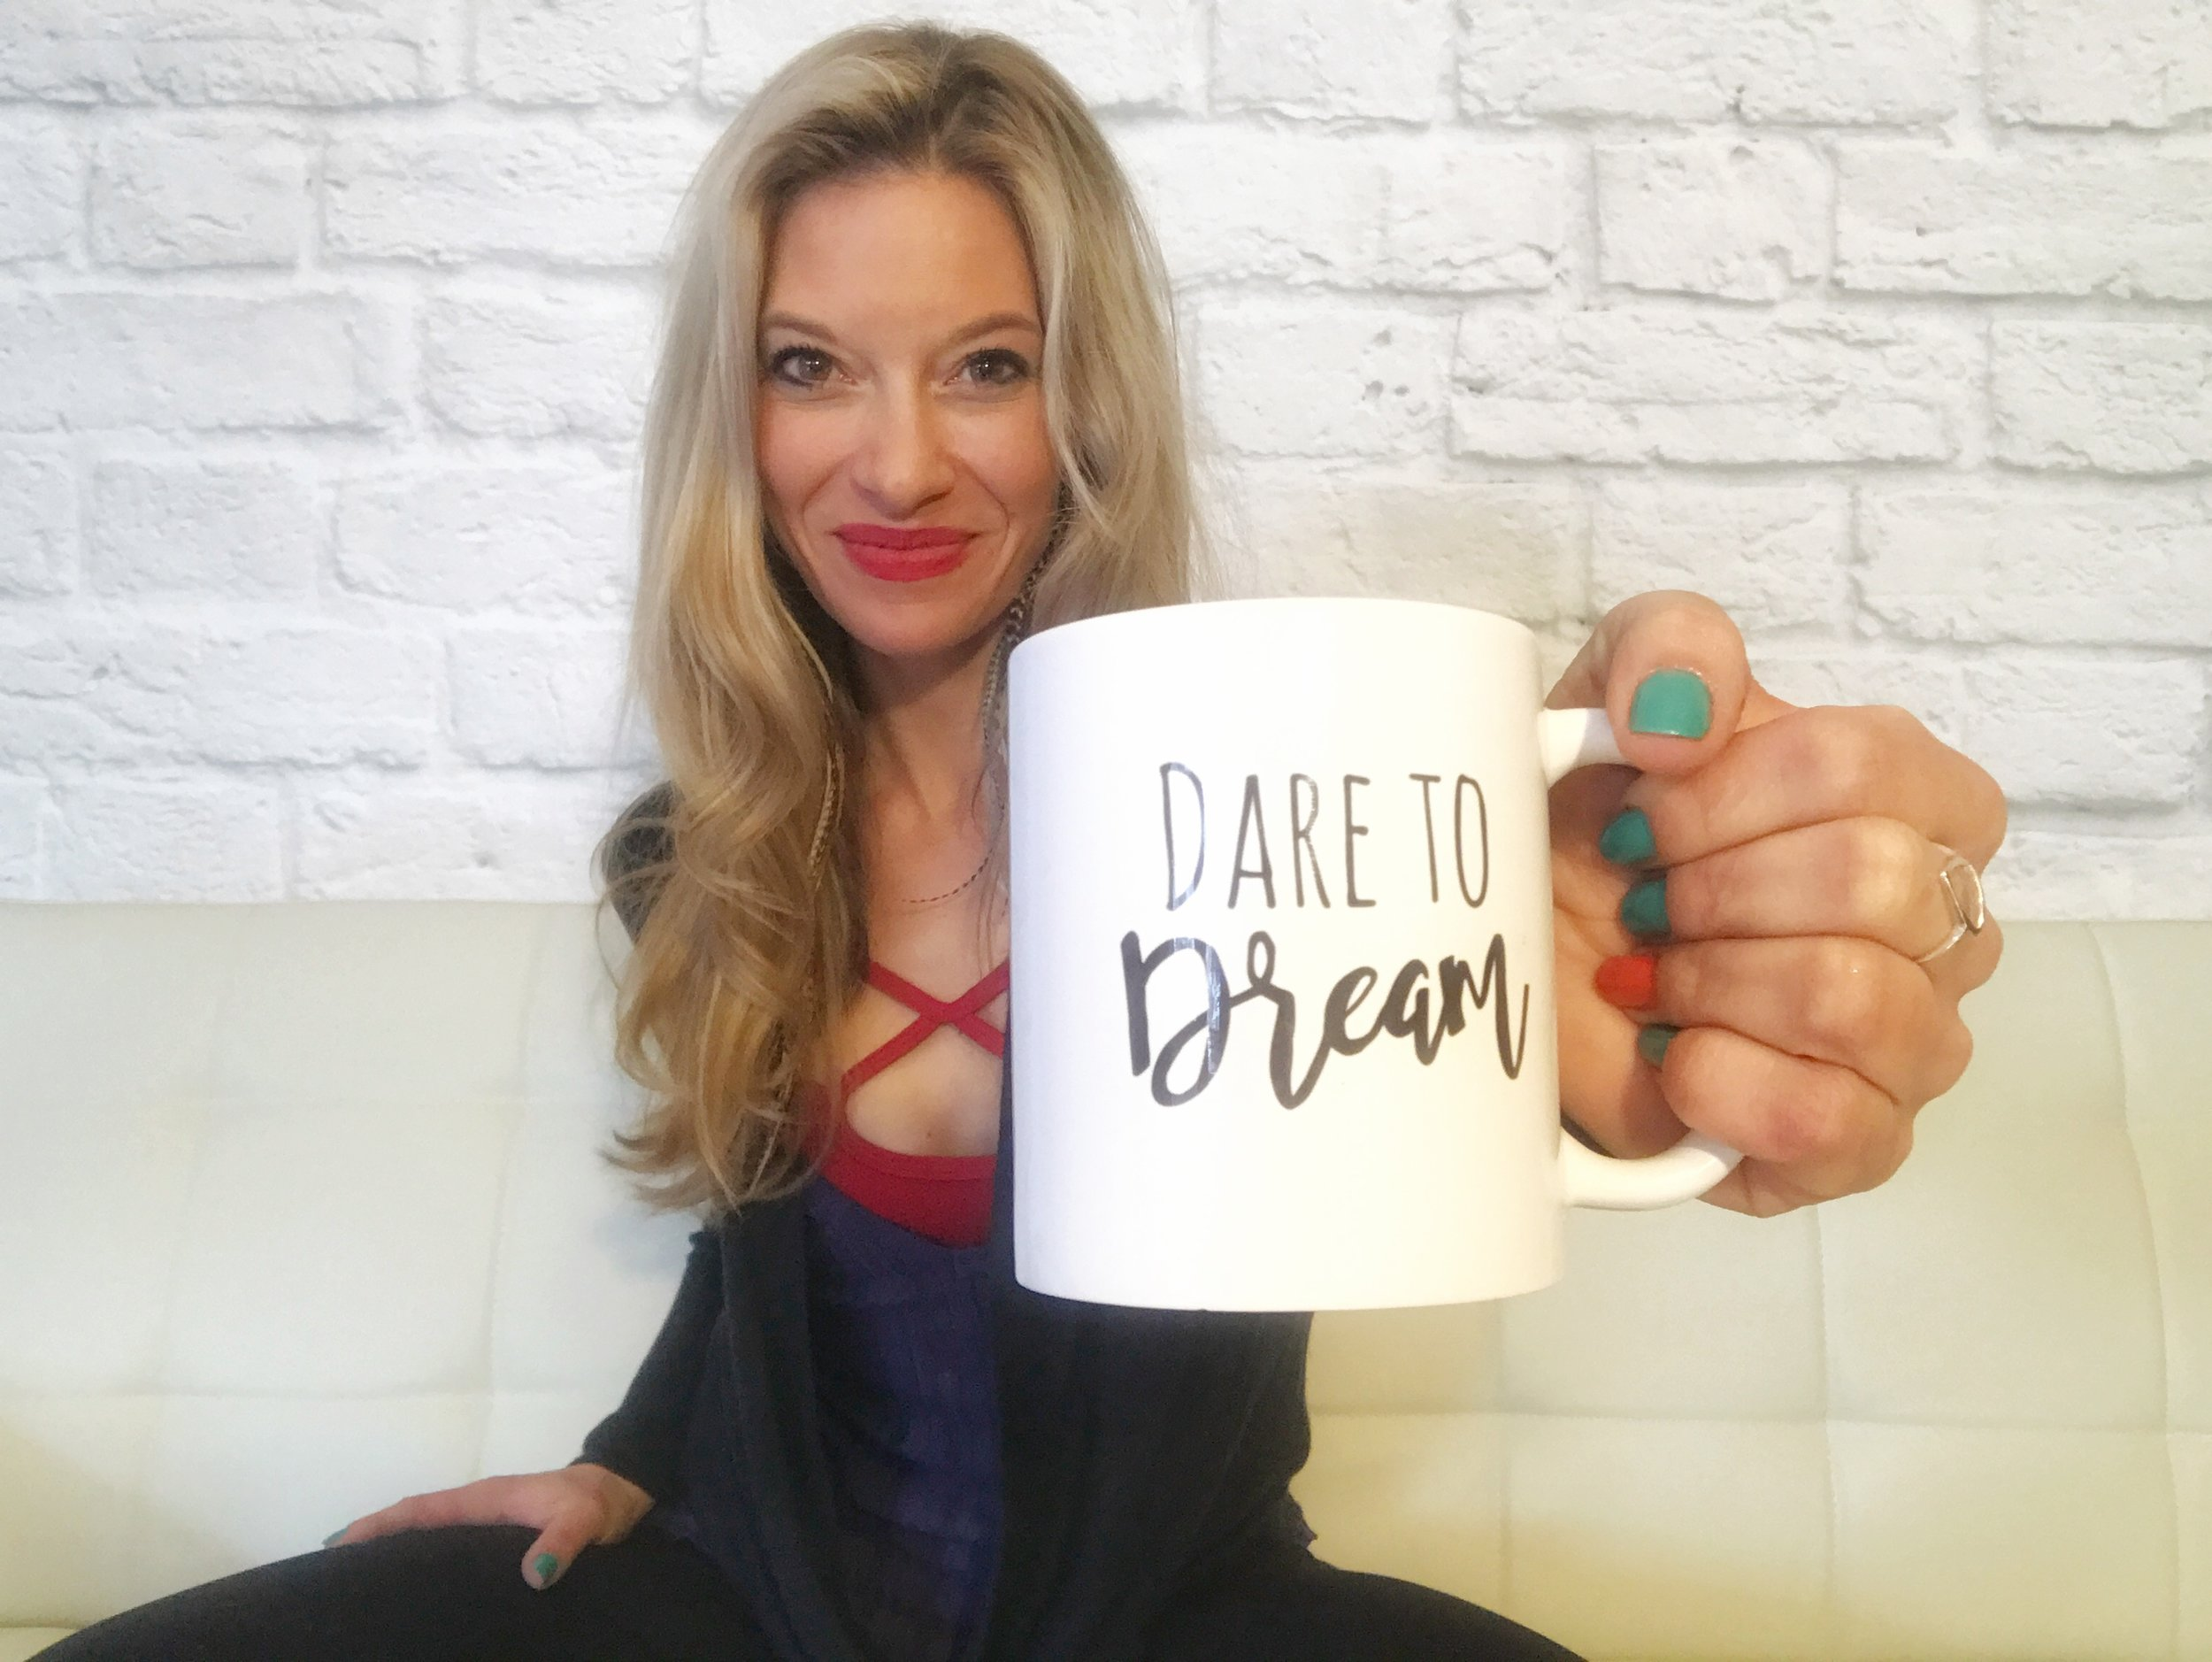 Do you have a dream? - I'm an author, coach, founder and CEO of three fantastic businesses I started from scratch in a single year. Over the past 17 years, I've run businesses ranging from coaching to real estate investing; a tea company, a ghostwriting business, information products, and fitness programs online. My clients tell me that I help them get the 30,000 foot view of what needs to be done on the high level with their businesses to grow impact... and income!Book Your Free Consultation Here ->